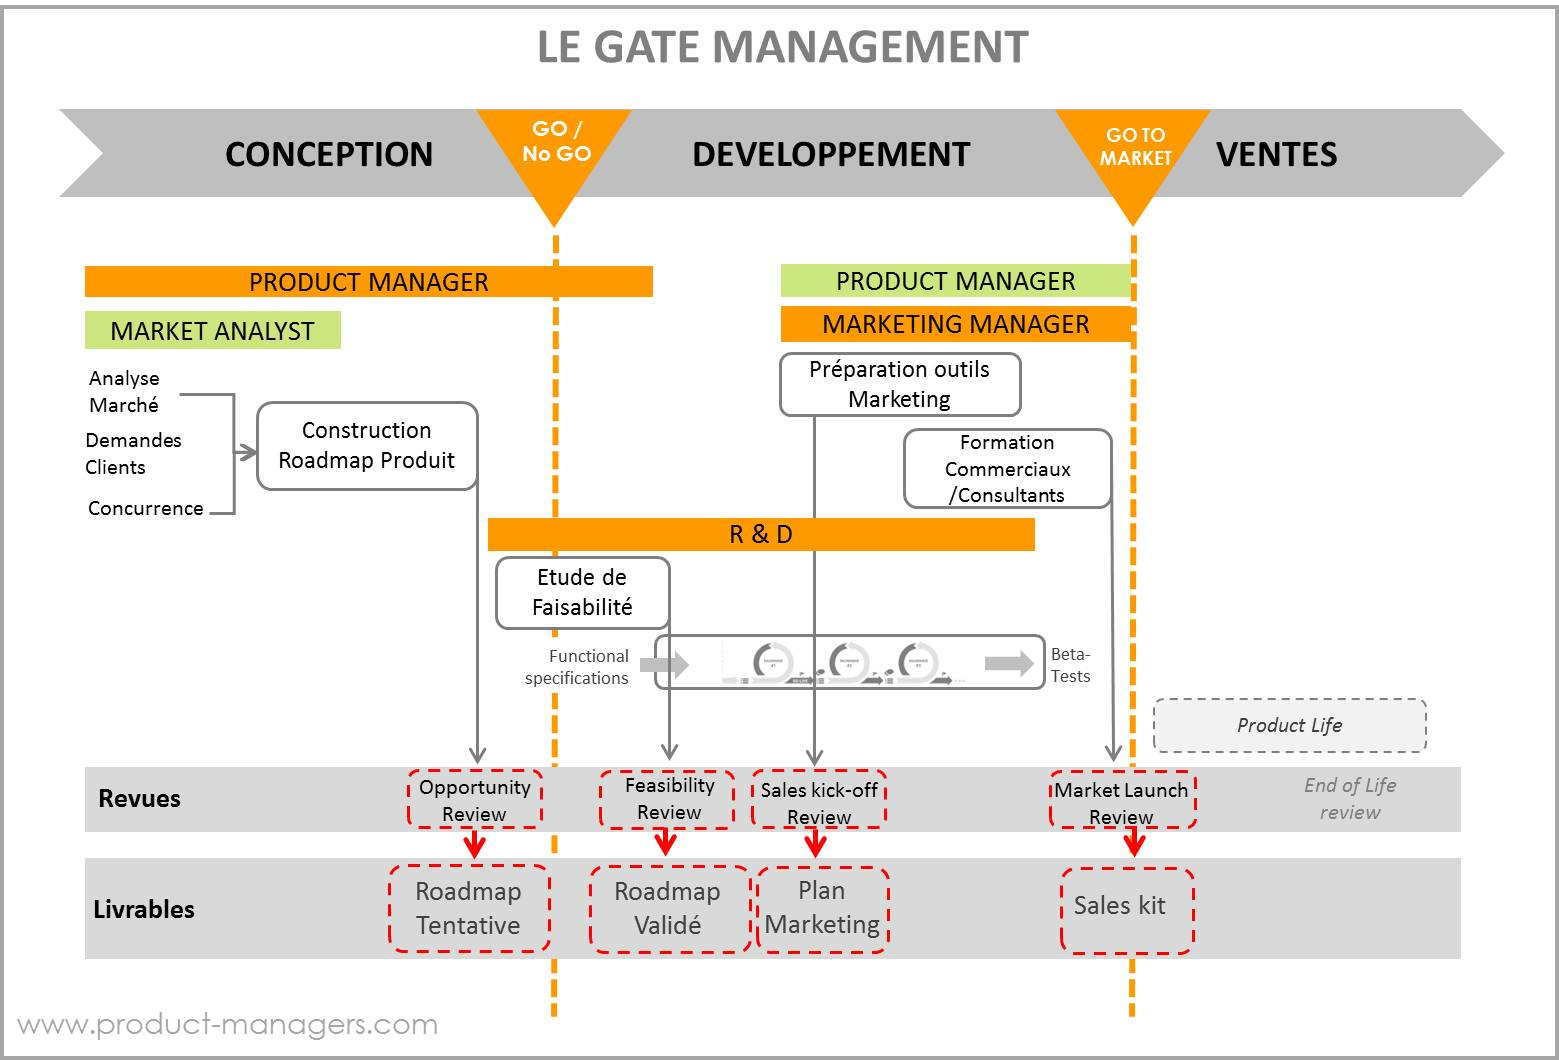 cycle-de-vie-produit-gate-management-product-managers